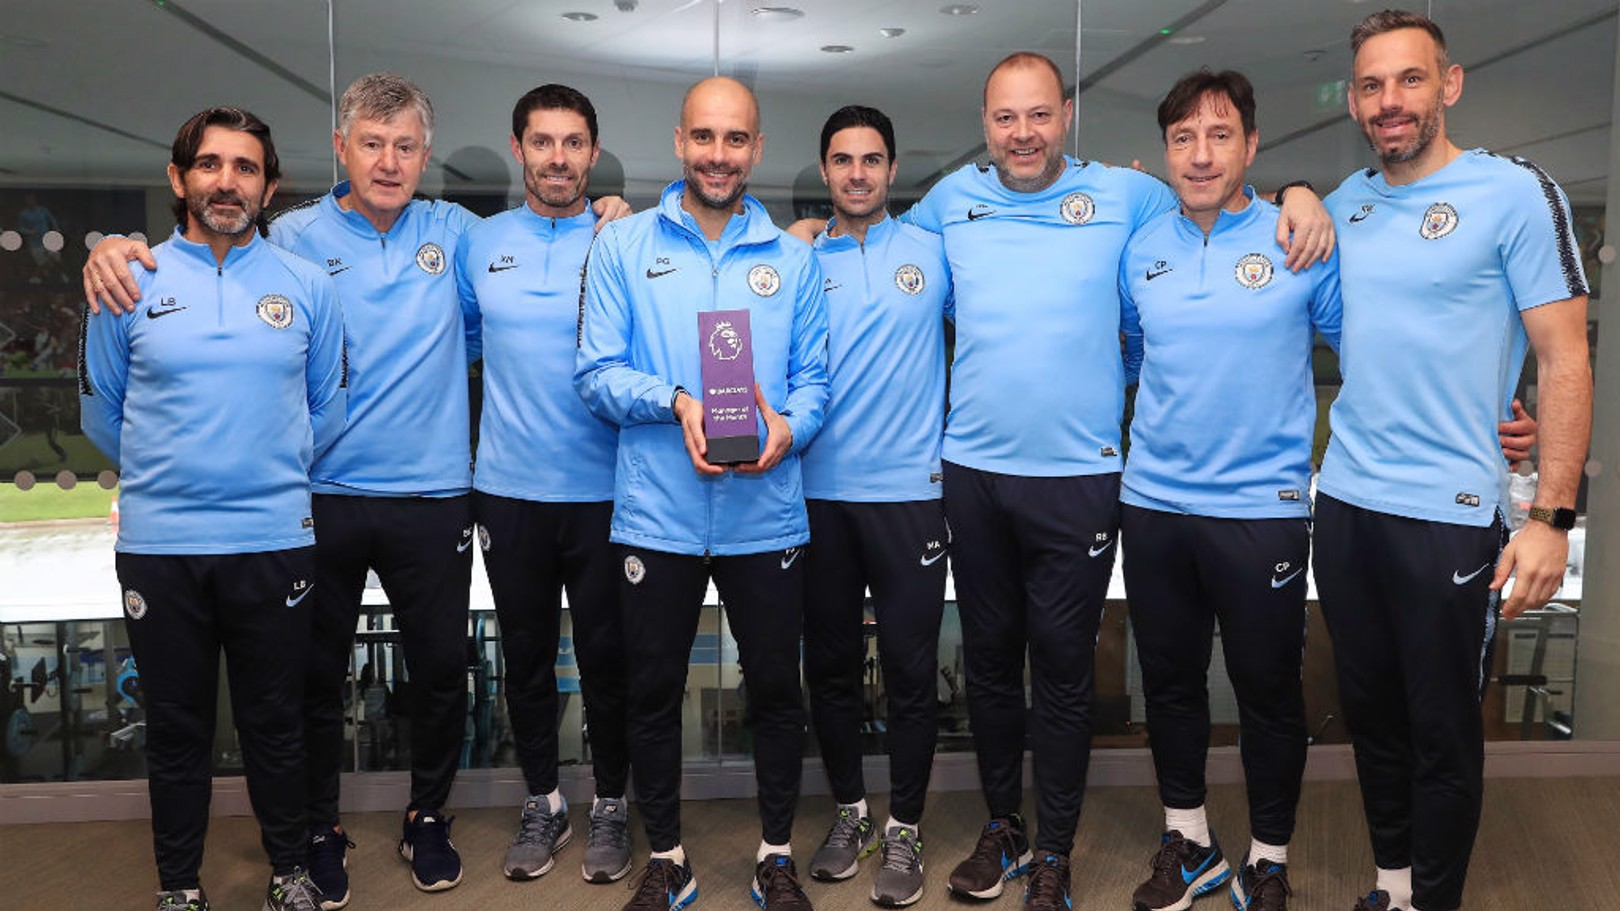 PL AWARD: Pep and his staff with the Barclay's Manager of the Month award